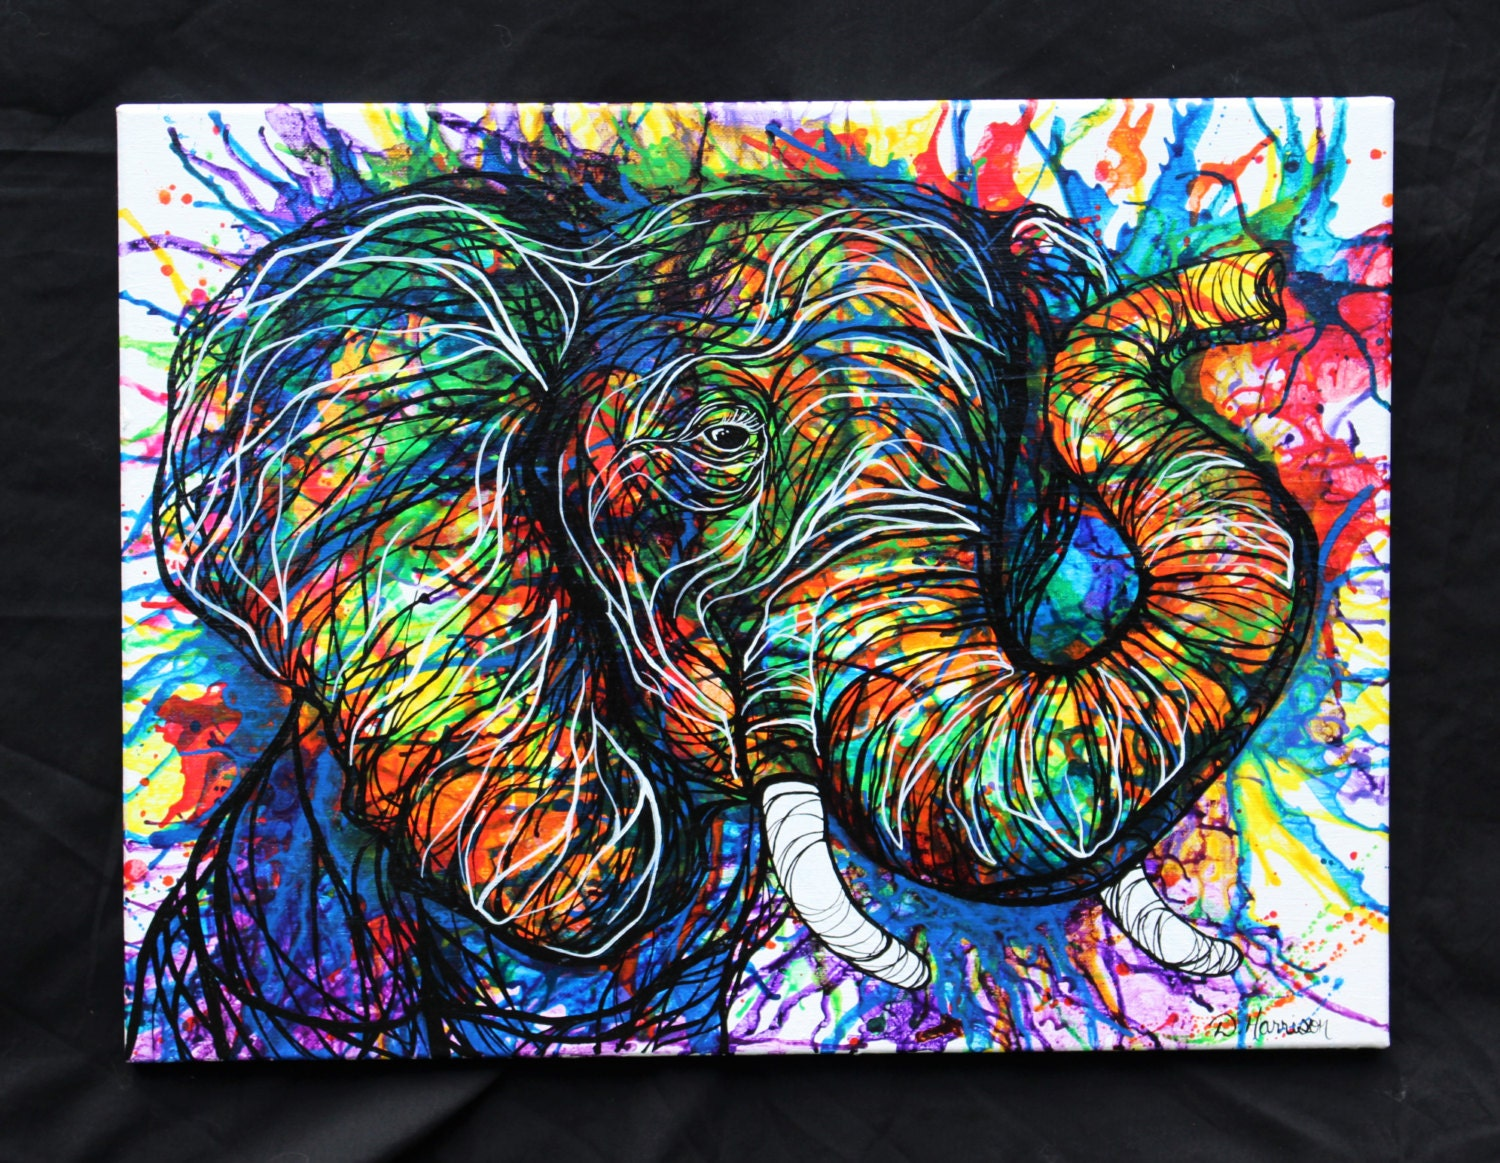 Abstract Colorful Elephant Art Original Acrylic Painting